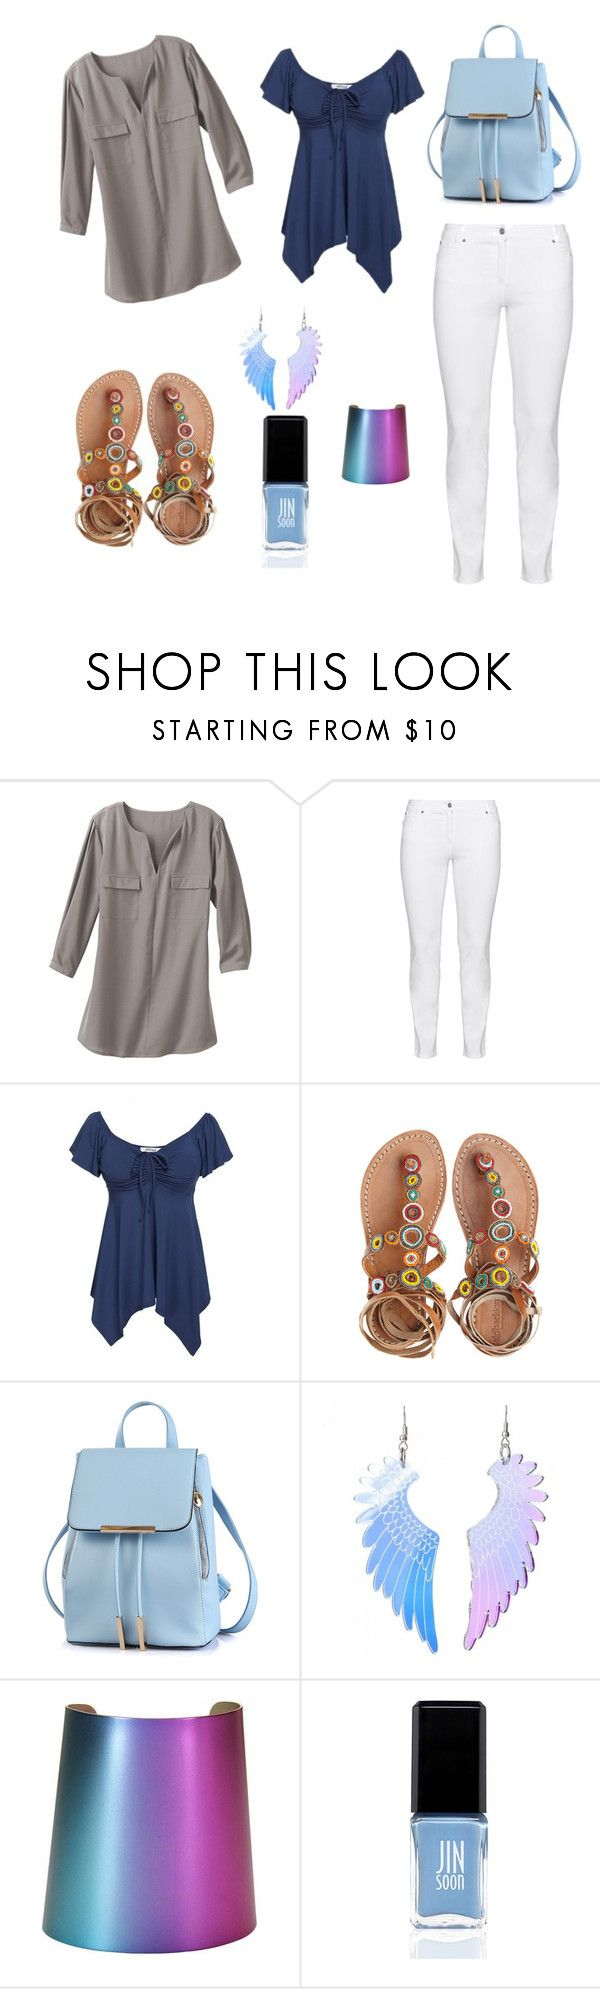 """""""Untitled #25"""" by balog-viki on Polyvore featuring TravelSmith, Steilmann, Laidback London, Tatty Devine, JINsoon and plus size clothing"""